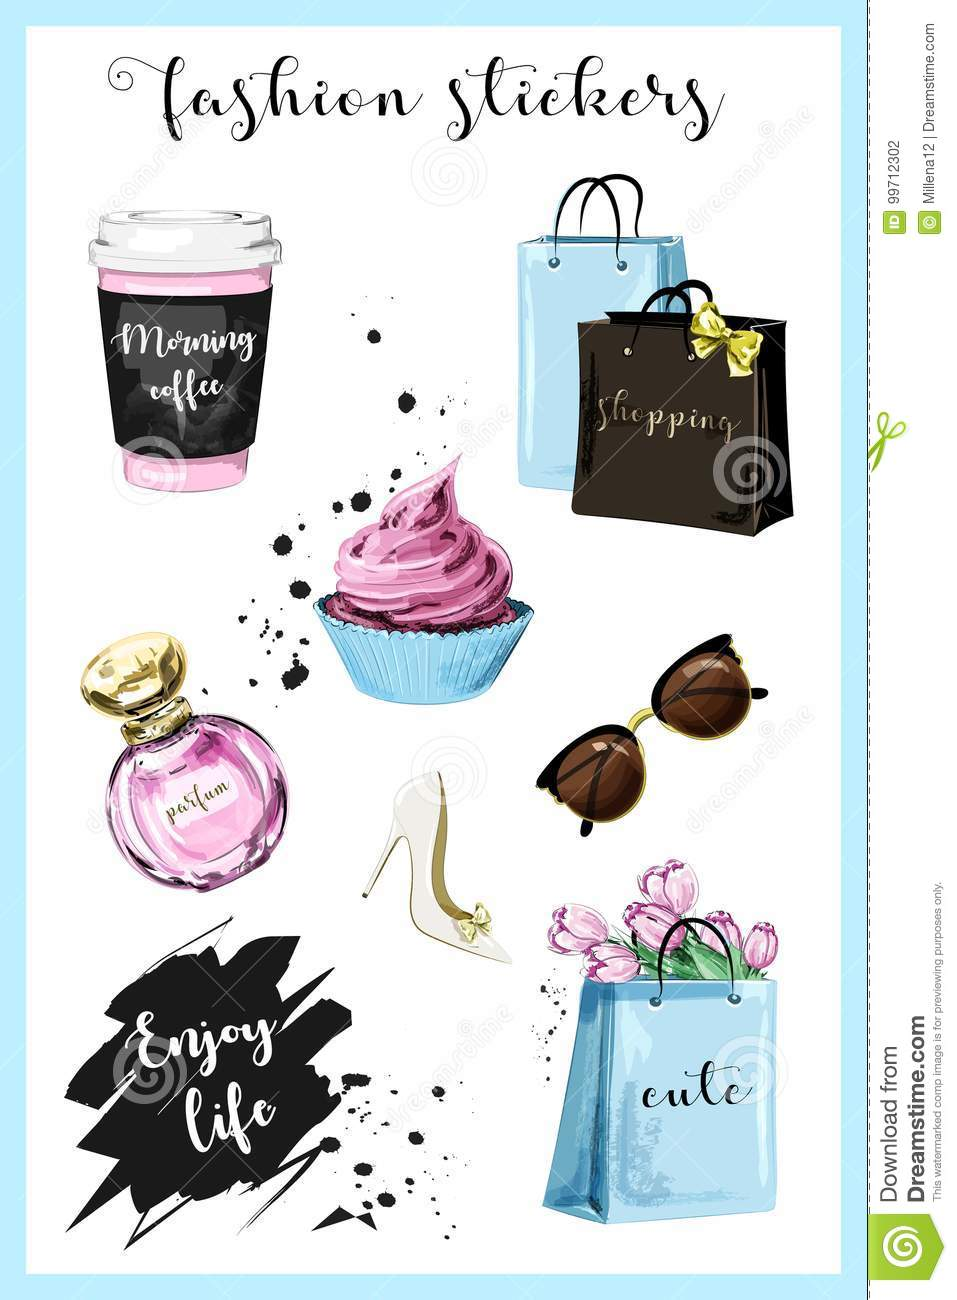 b81f6166366 Royalty-Free Vector. Fashion planner girl stickers with coffee cup,  shopping bags, perfume, shoe, sunglasses